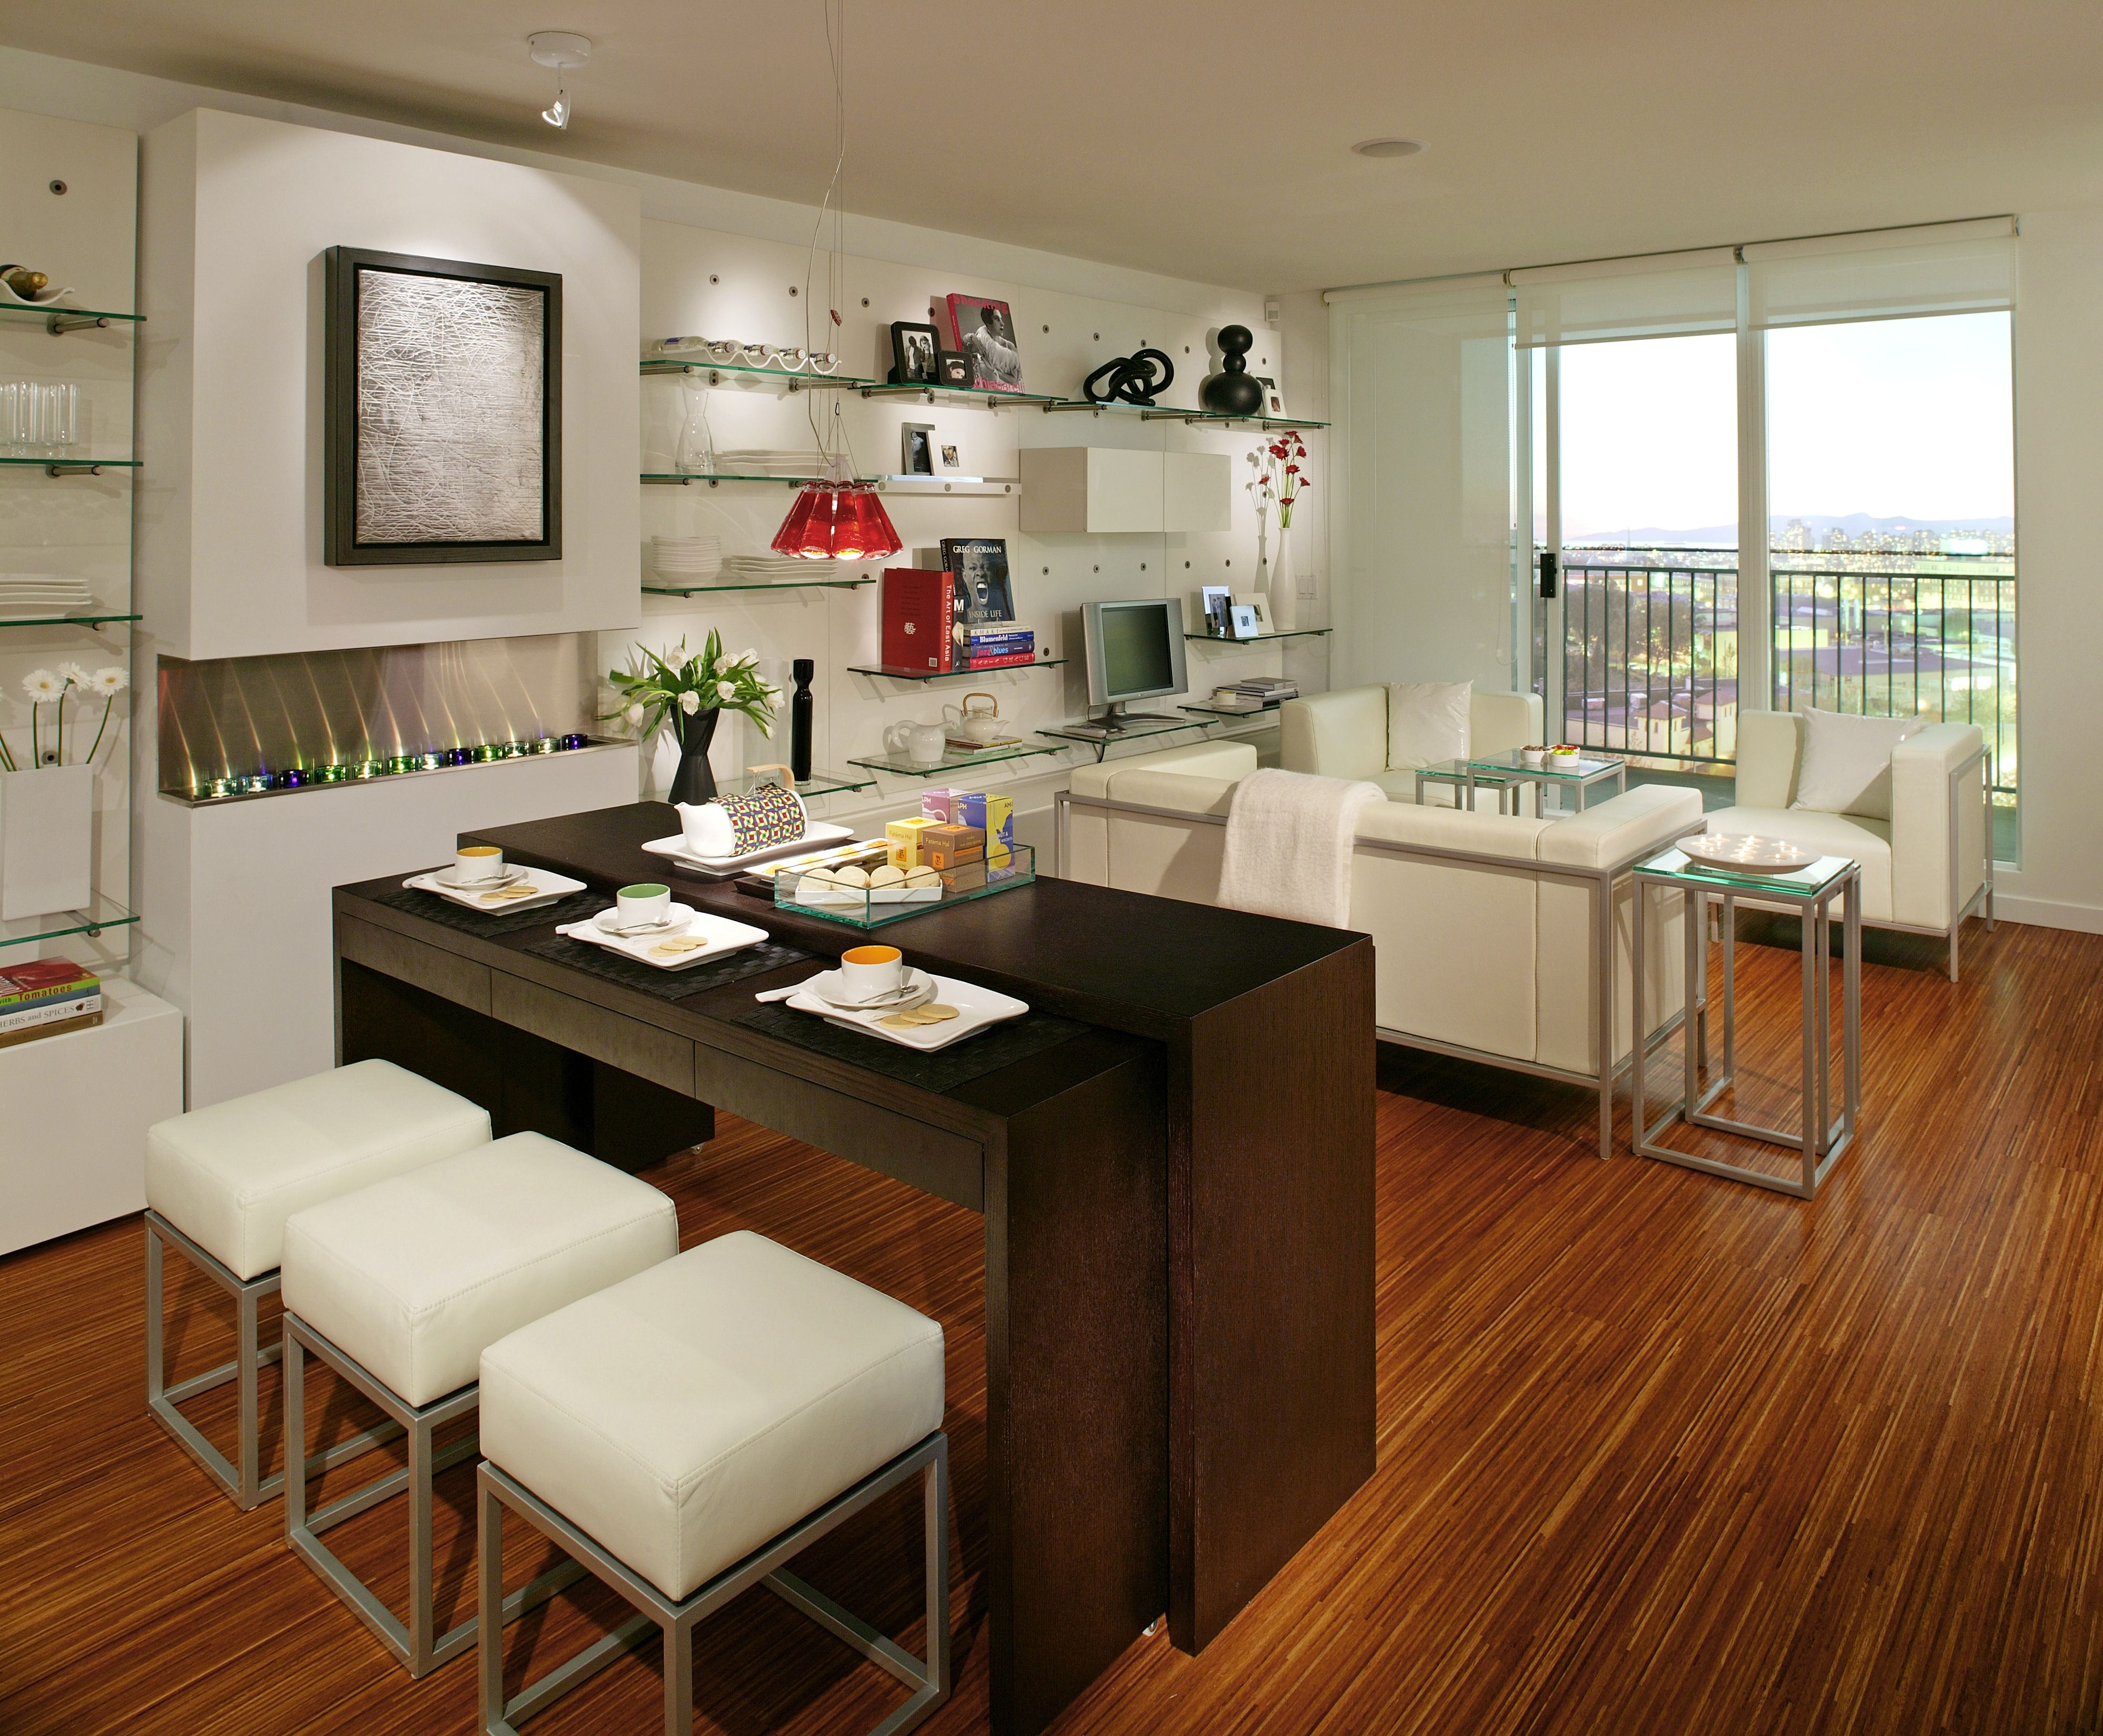 How Can I Stop My Fluorescent Lights From Buzzing Fun Kitchen Decor Dining Inspiration Kitchen Decor